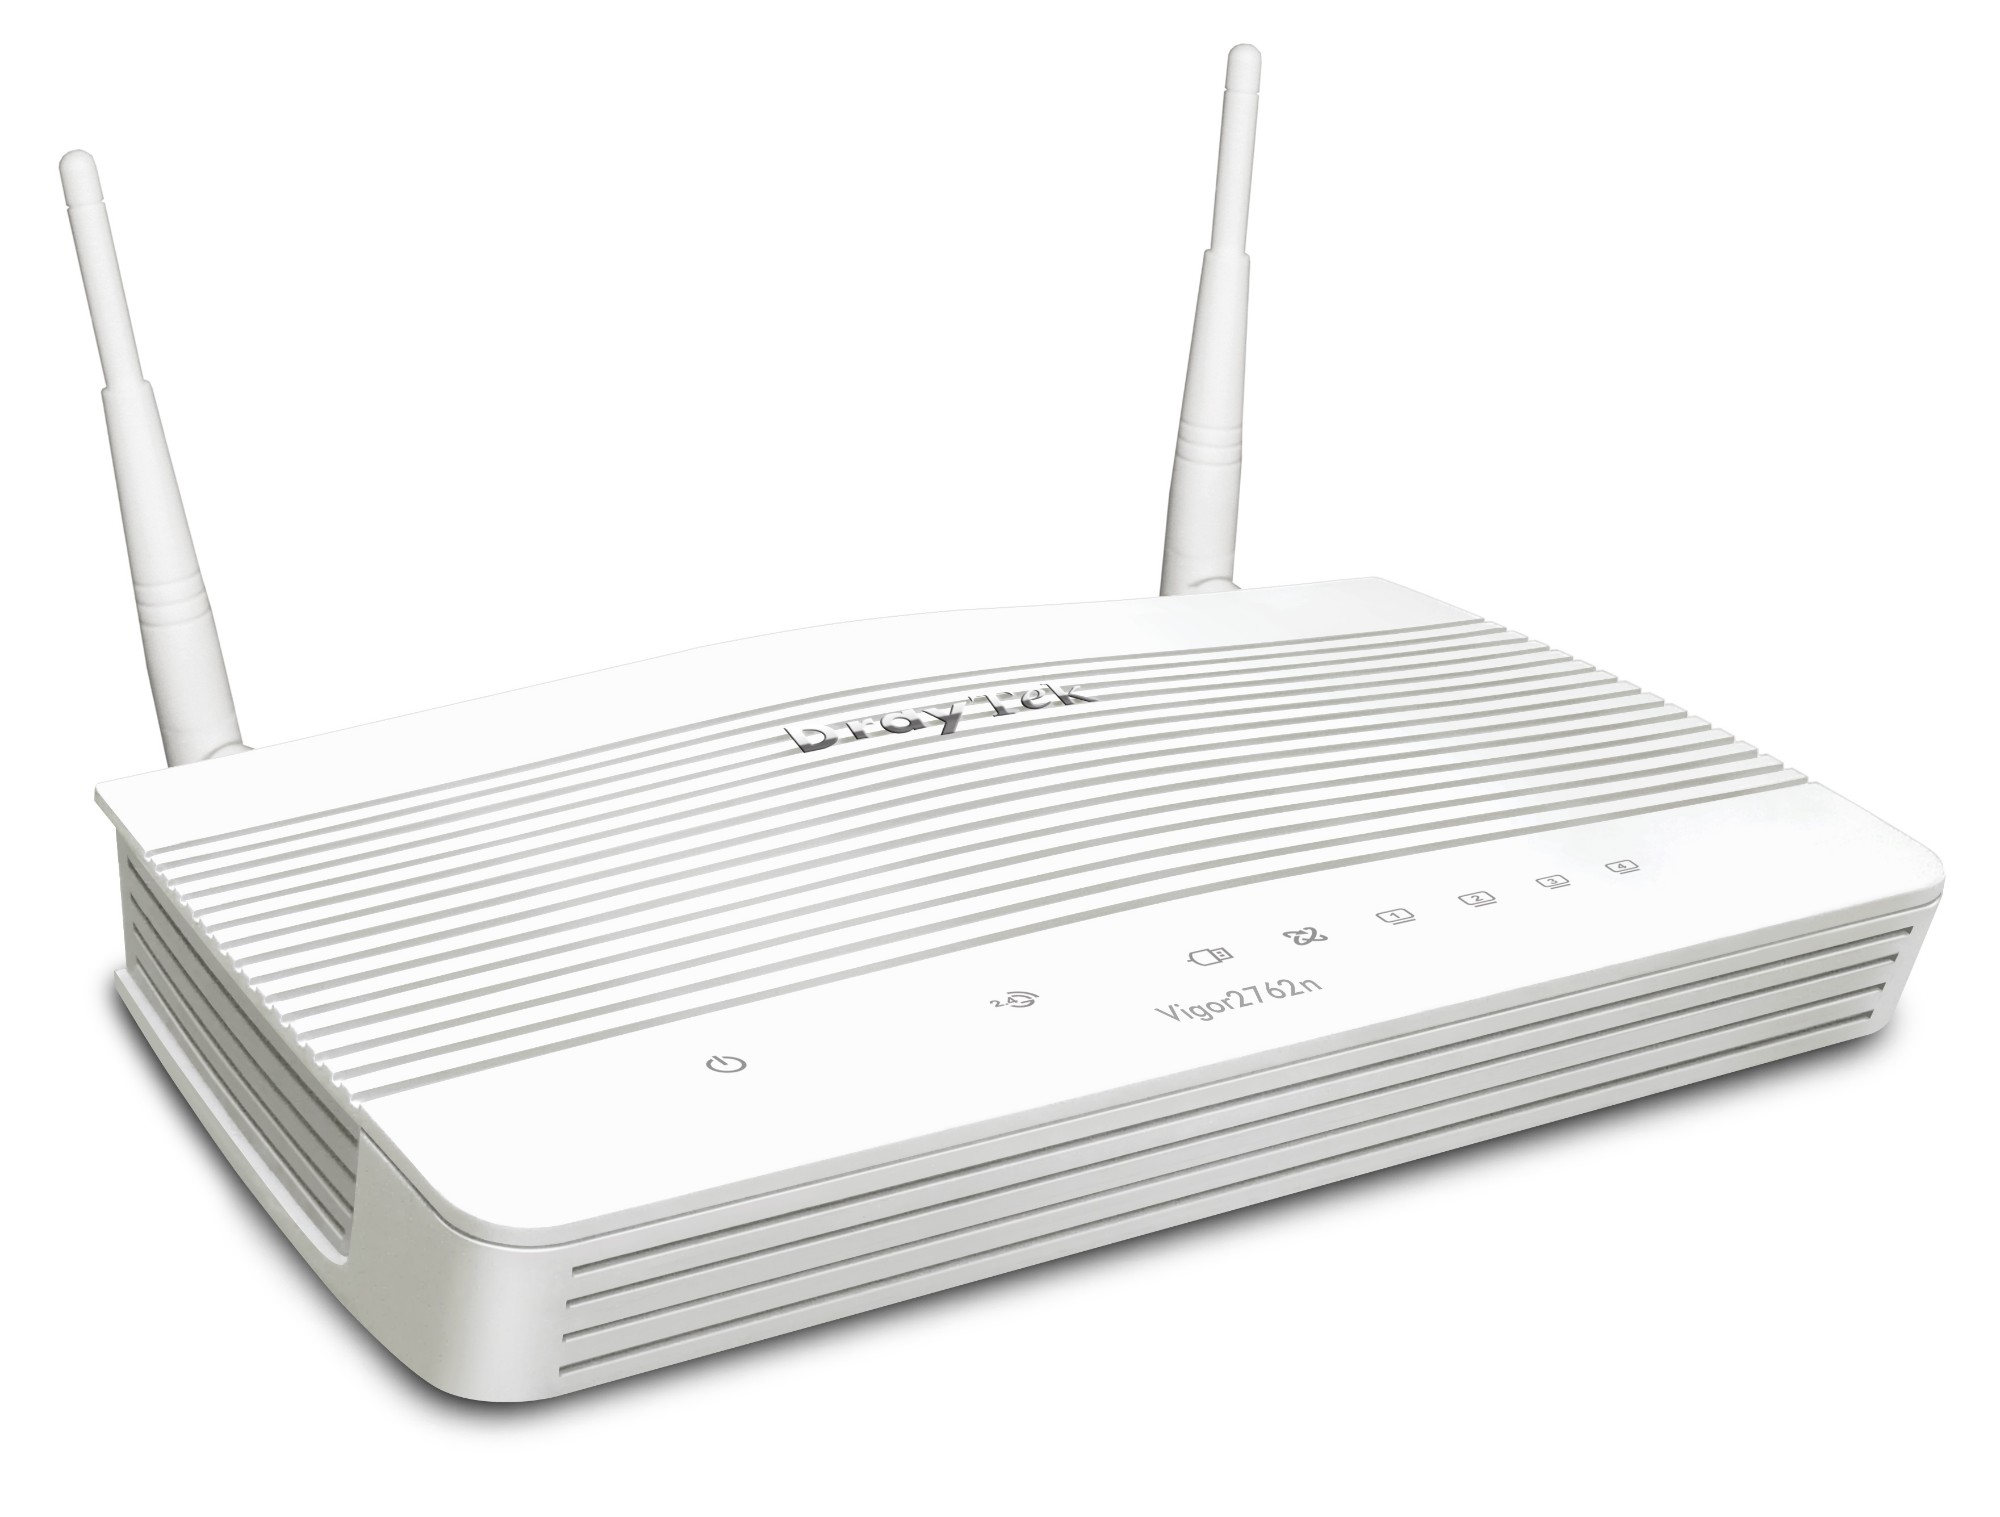 SoHo Router firewall for ADSL, VDSL or Ethernet WAN with Wi-Fi 802.11n